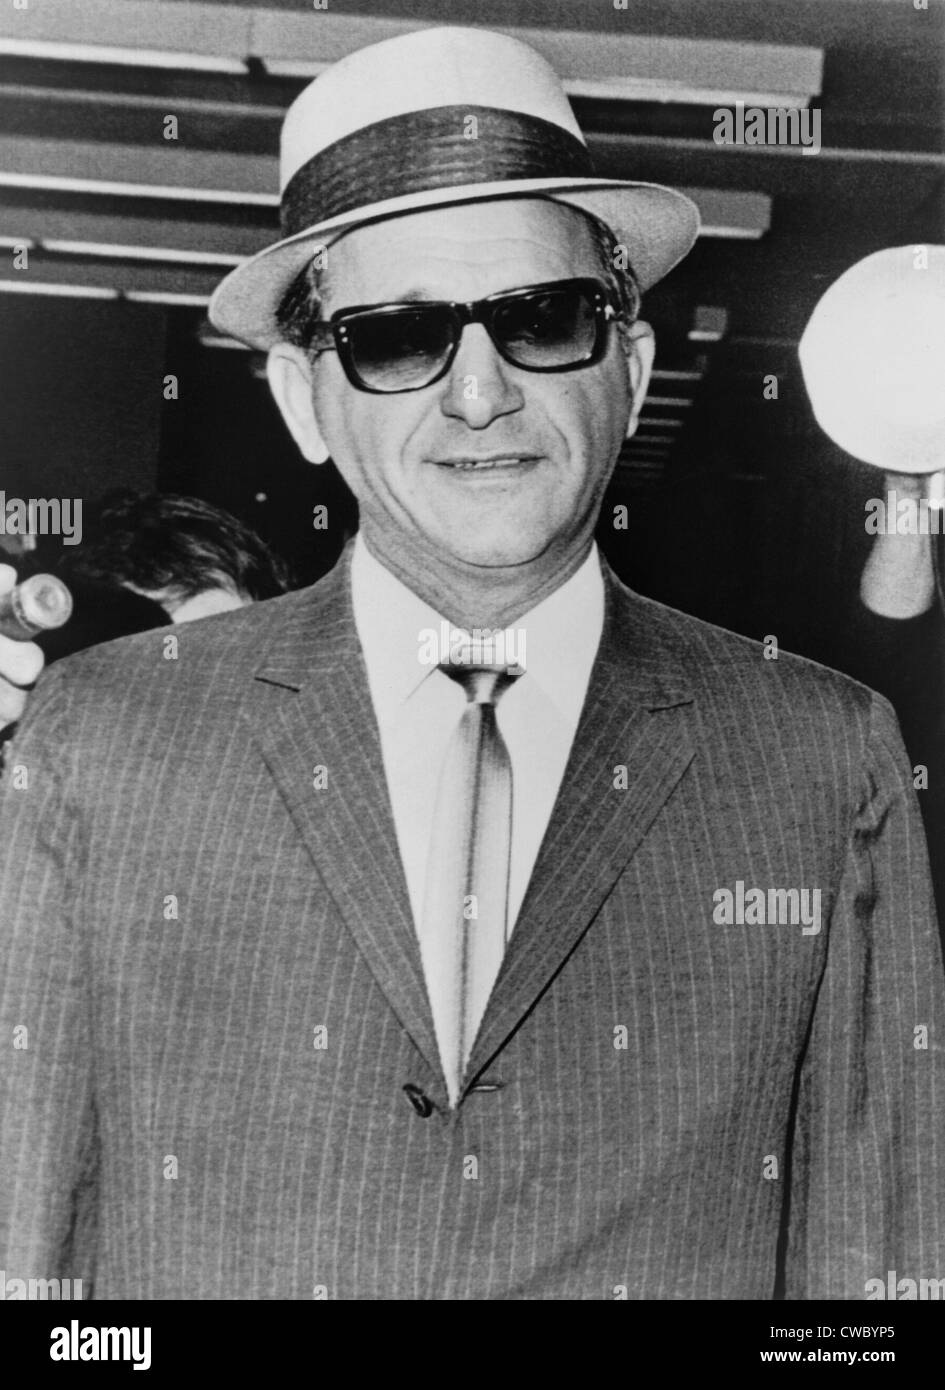 Sammy Giancana (1908-1975), American mobster and boss of the 'Chicago Outfit', arriving at the U.S. District - Stock Image